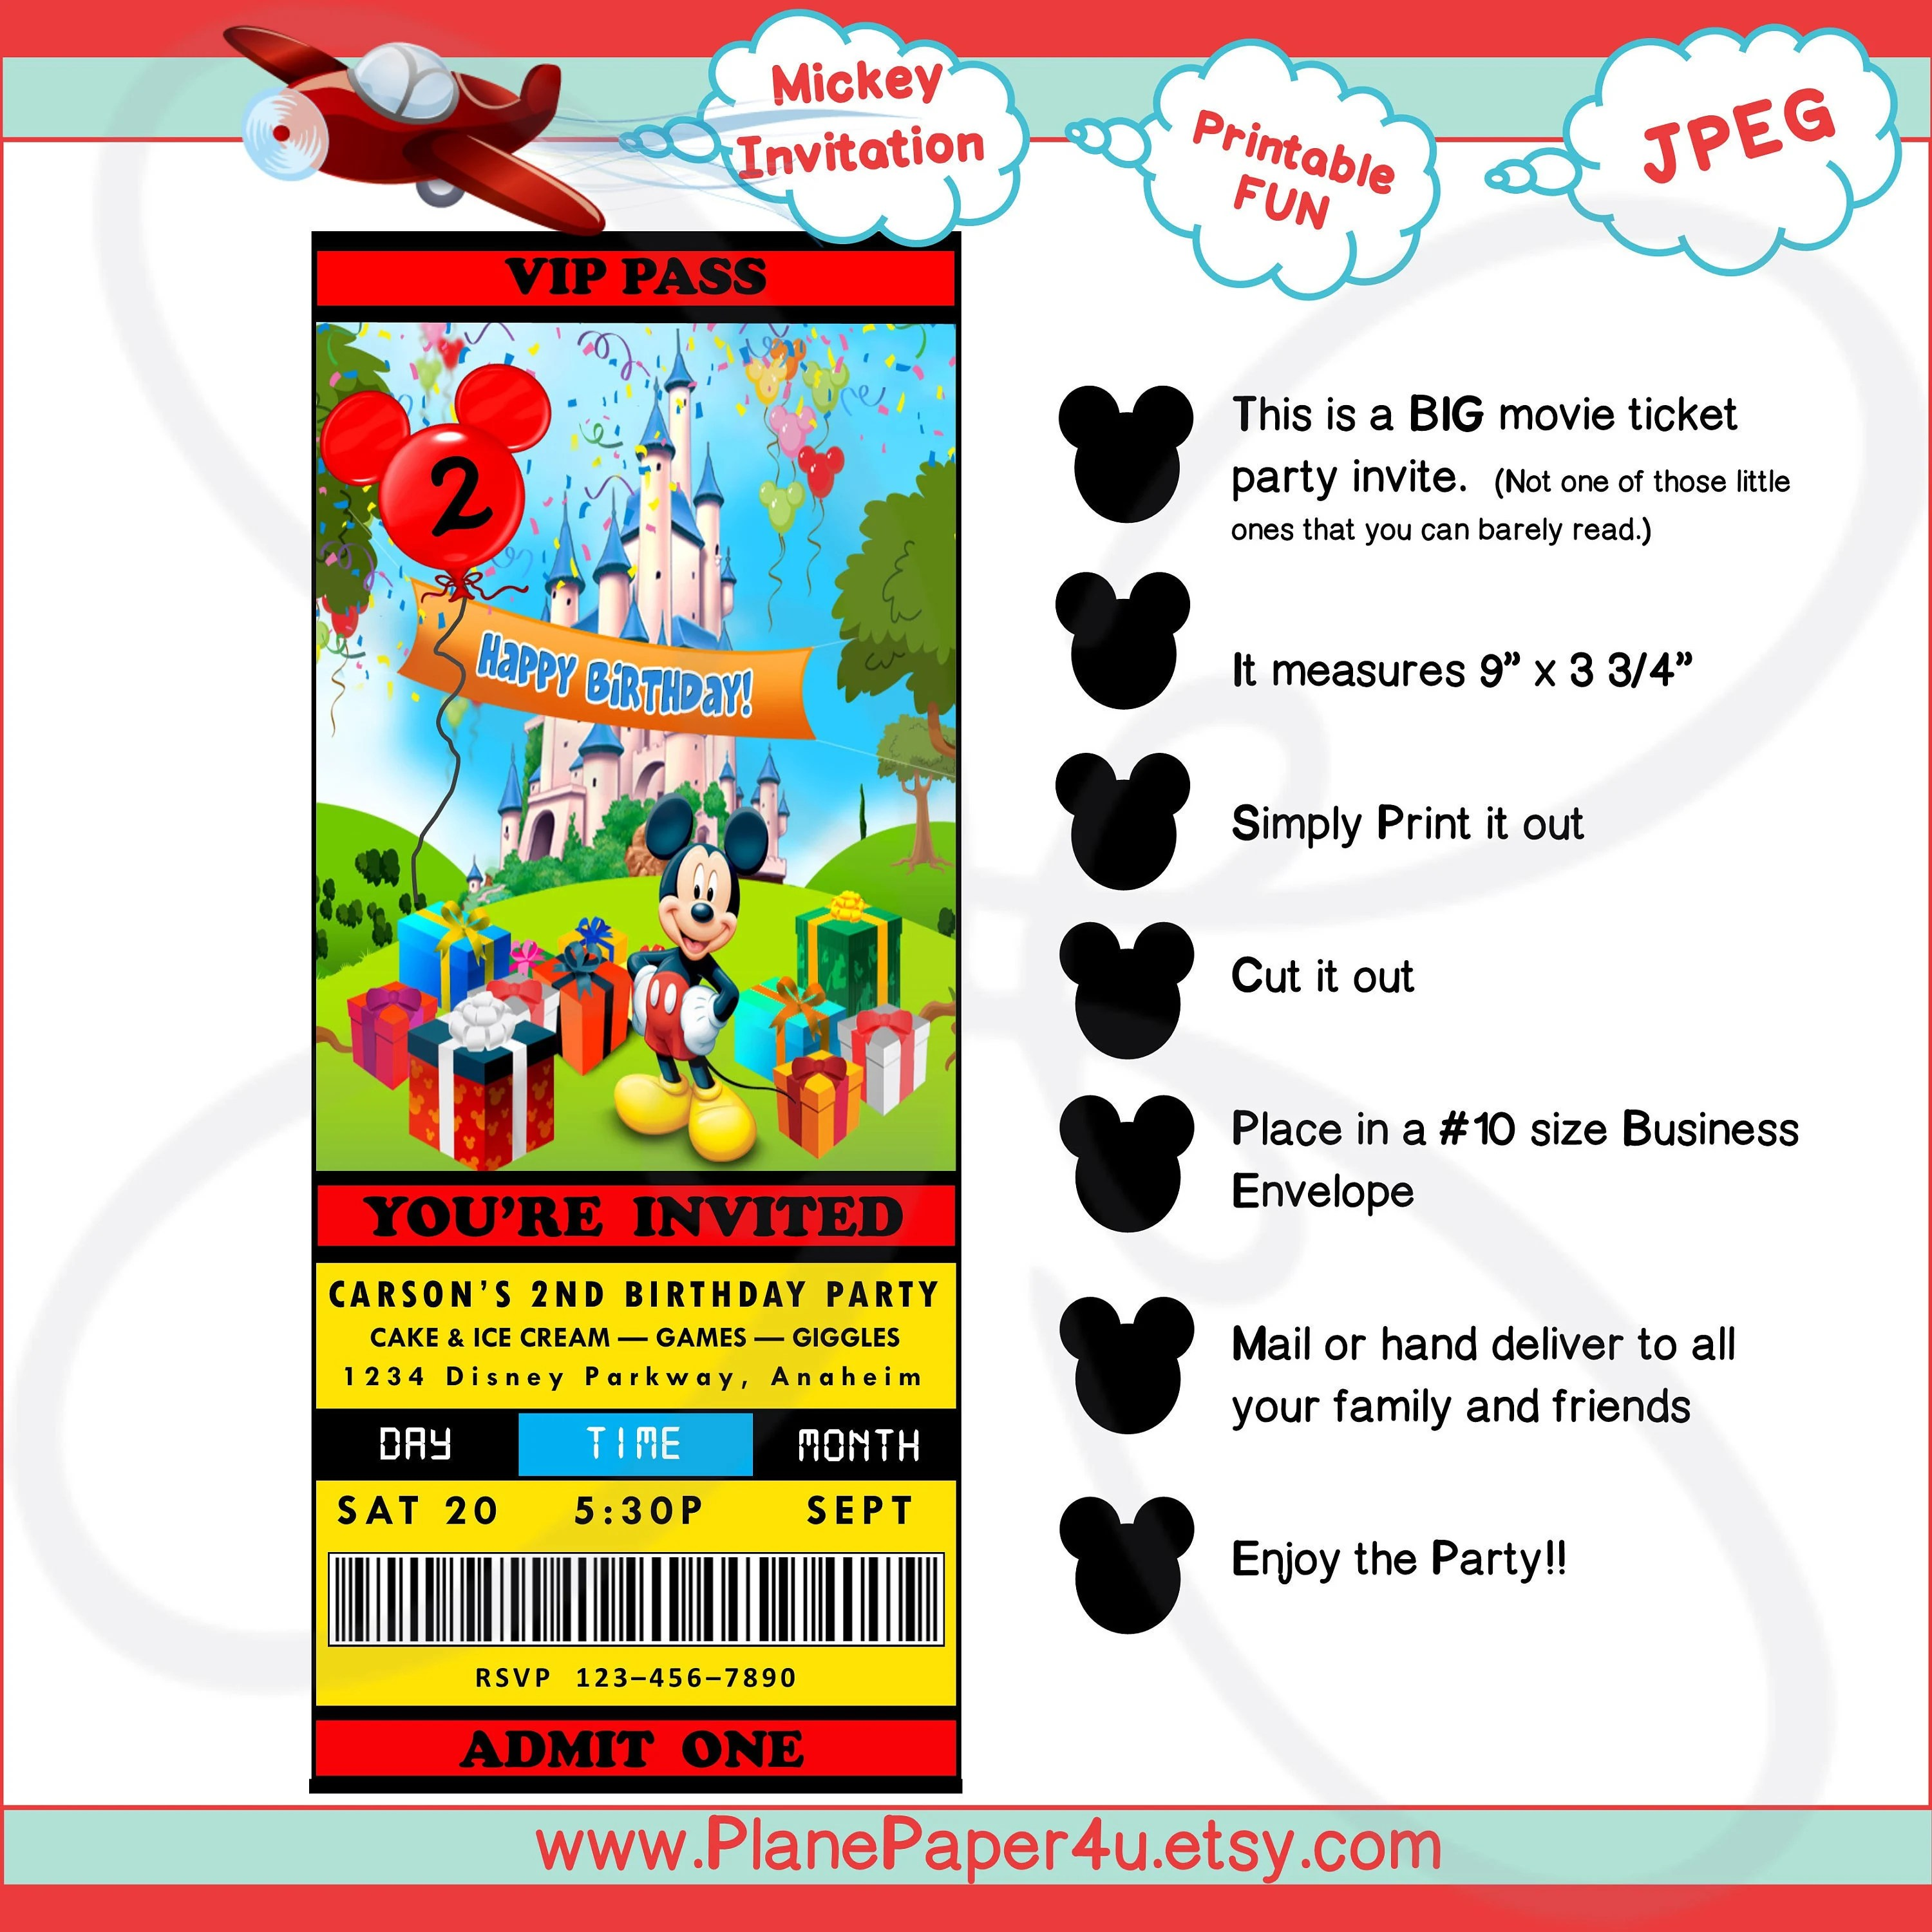 MICKEY MOUSE Birthday Party Invitation Digital Download Etsy